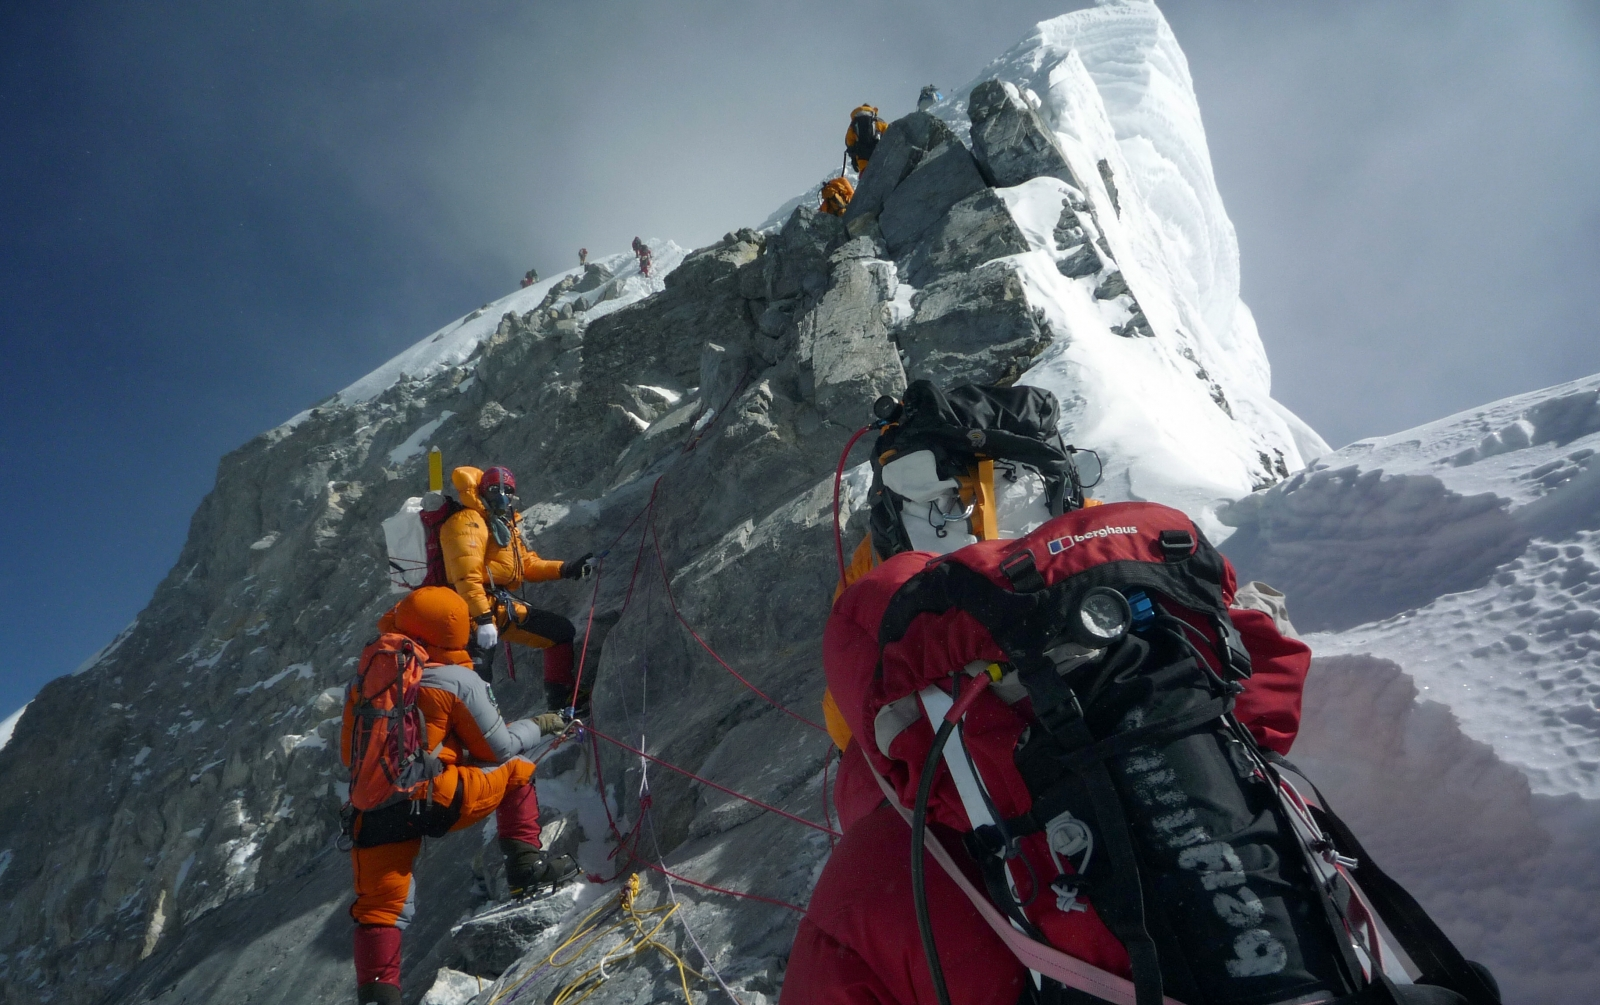 Four climbers found dead in tent on Everest